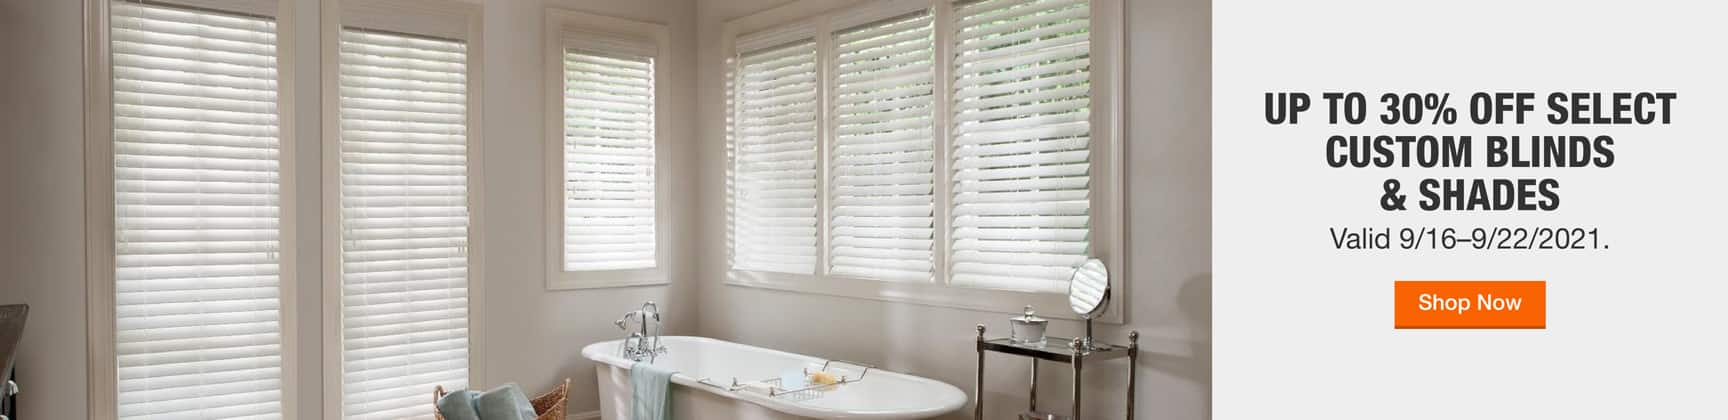 Up to 30% off Select Custom Blinds & Shades